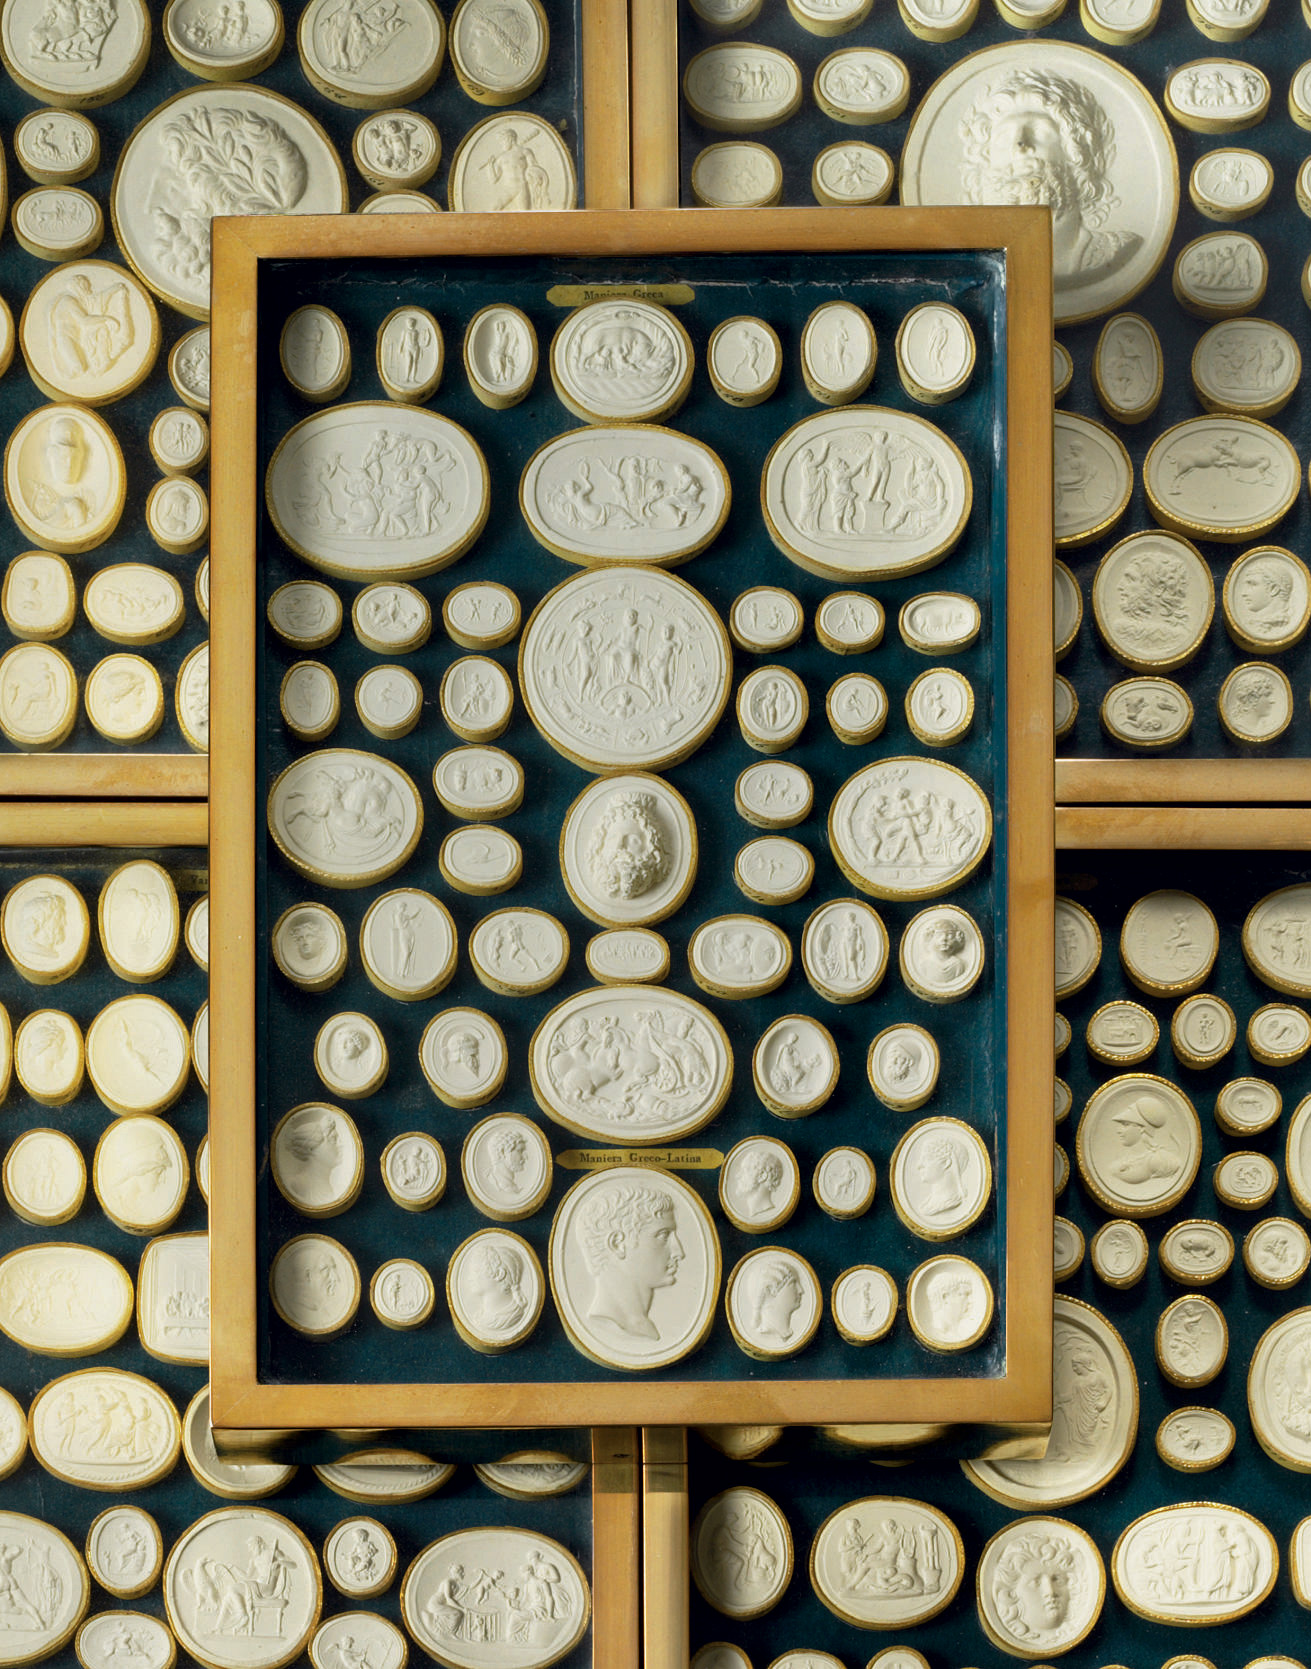 A set of 15 Italian plaster intaglio impressions from the first half of the 19th century sold for over $13,000 through    Christie's.